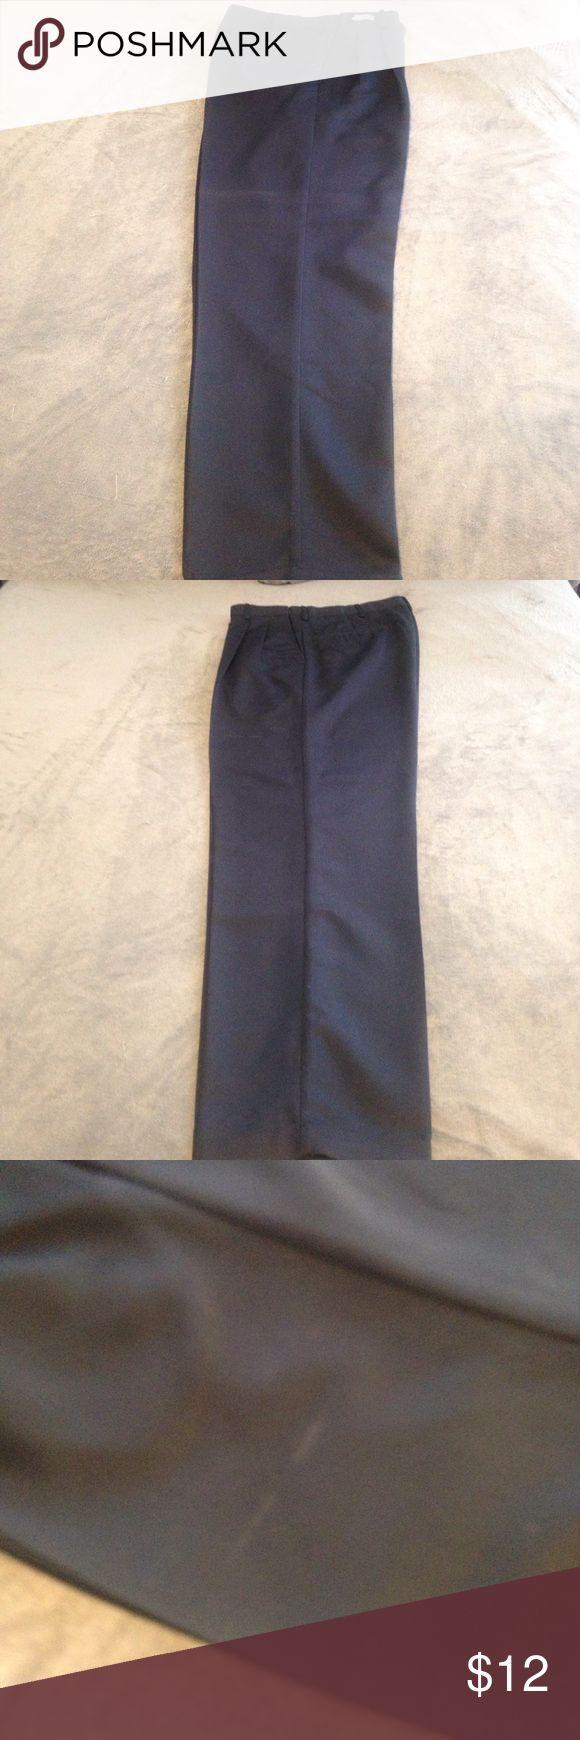 Men's Savane dress pants 34 x 32 just dry cleaned I have for sale a pair of men's navy dress pants in size 34w 32l, barely worn and just dry cleaned. Minor imperfection below the left pocket barely noticeable. Savane Pants Dress